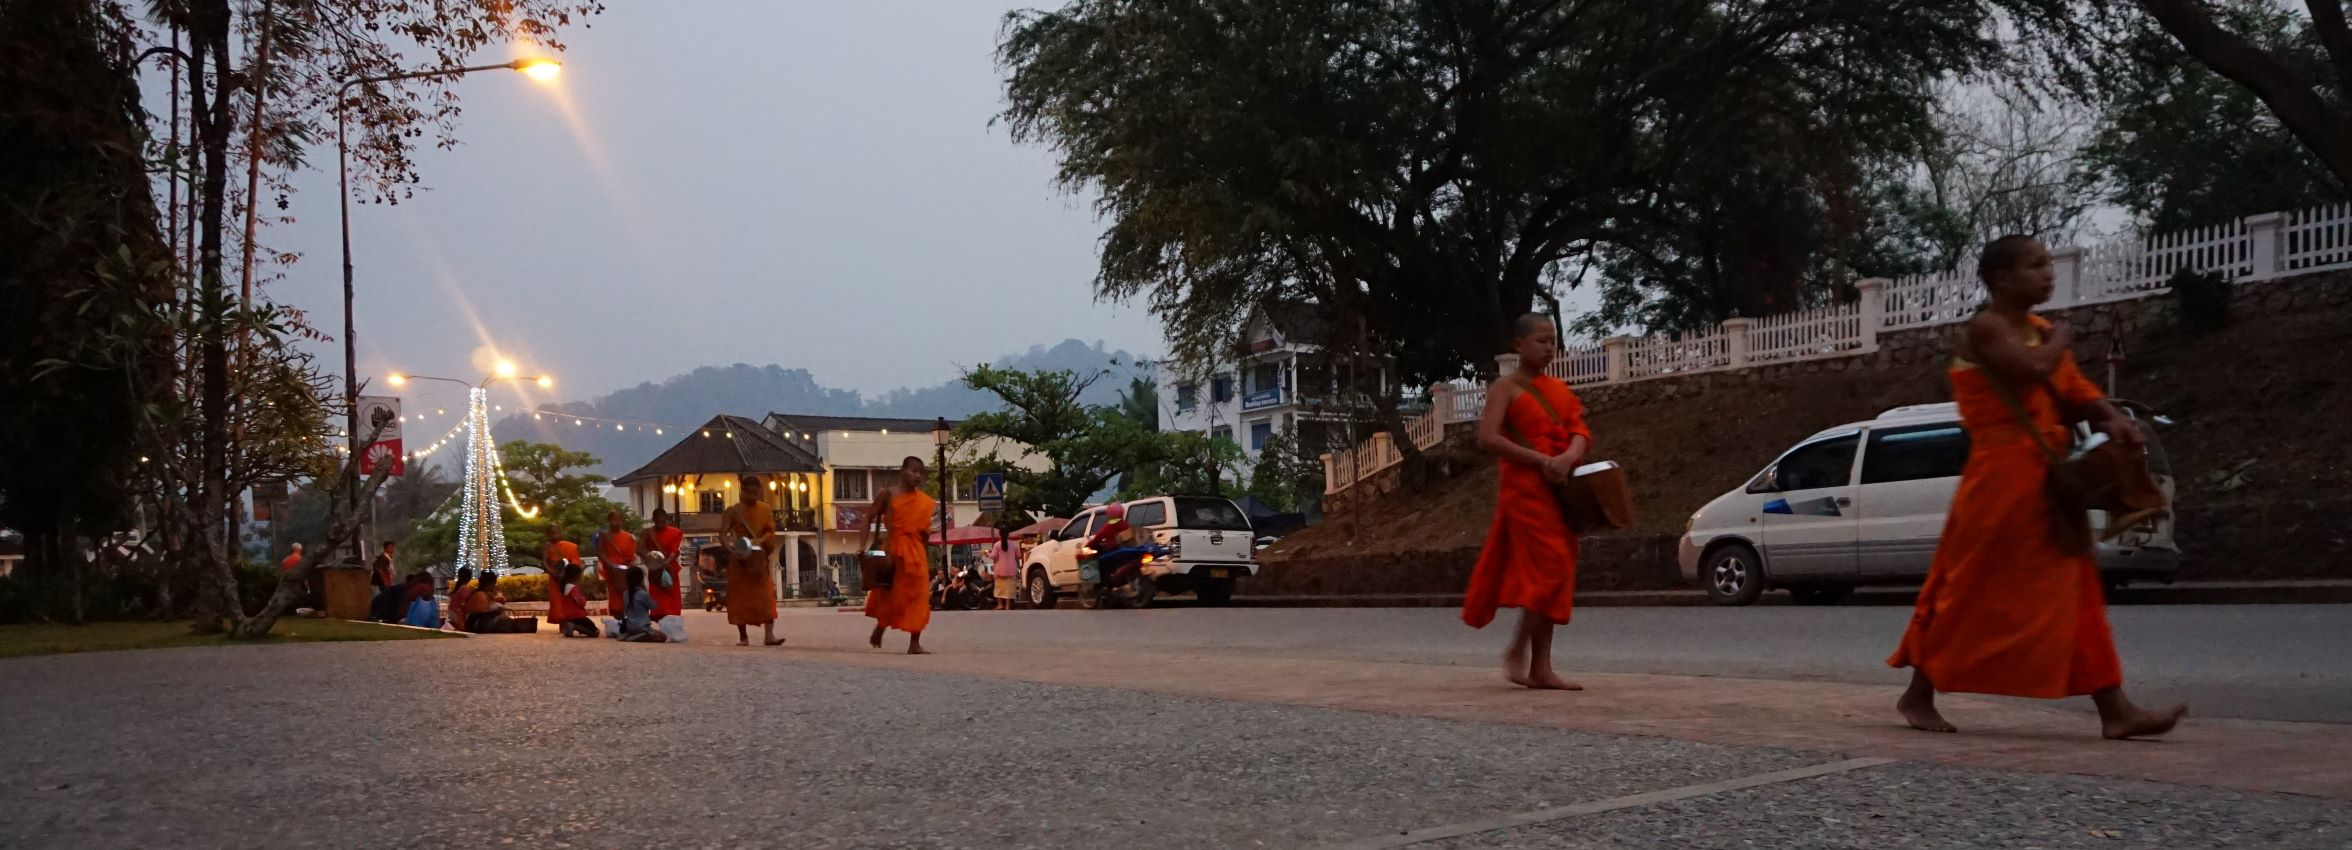 Young monks collecting alms at sunrise